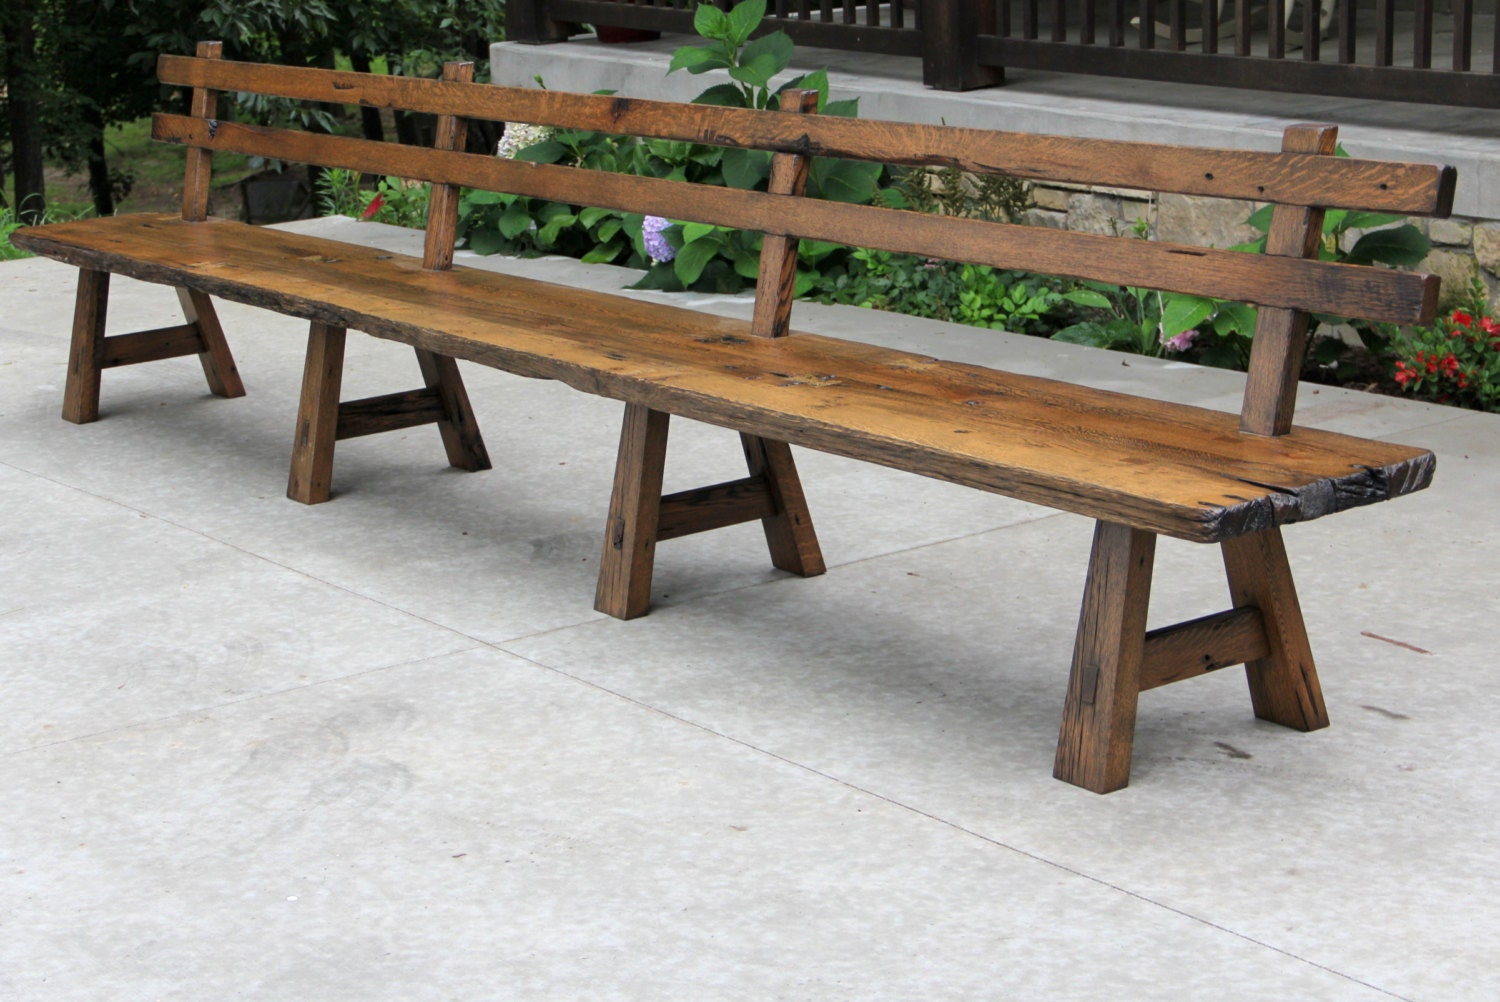 Live Edge Barn Wood Bench With Back Rest 15 39 Long